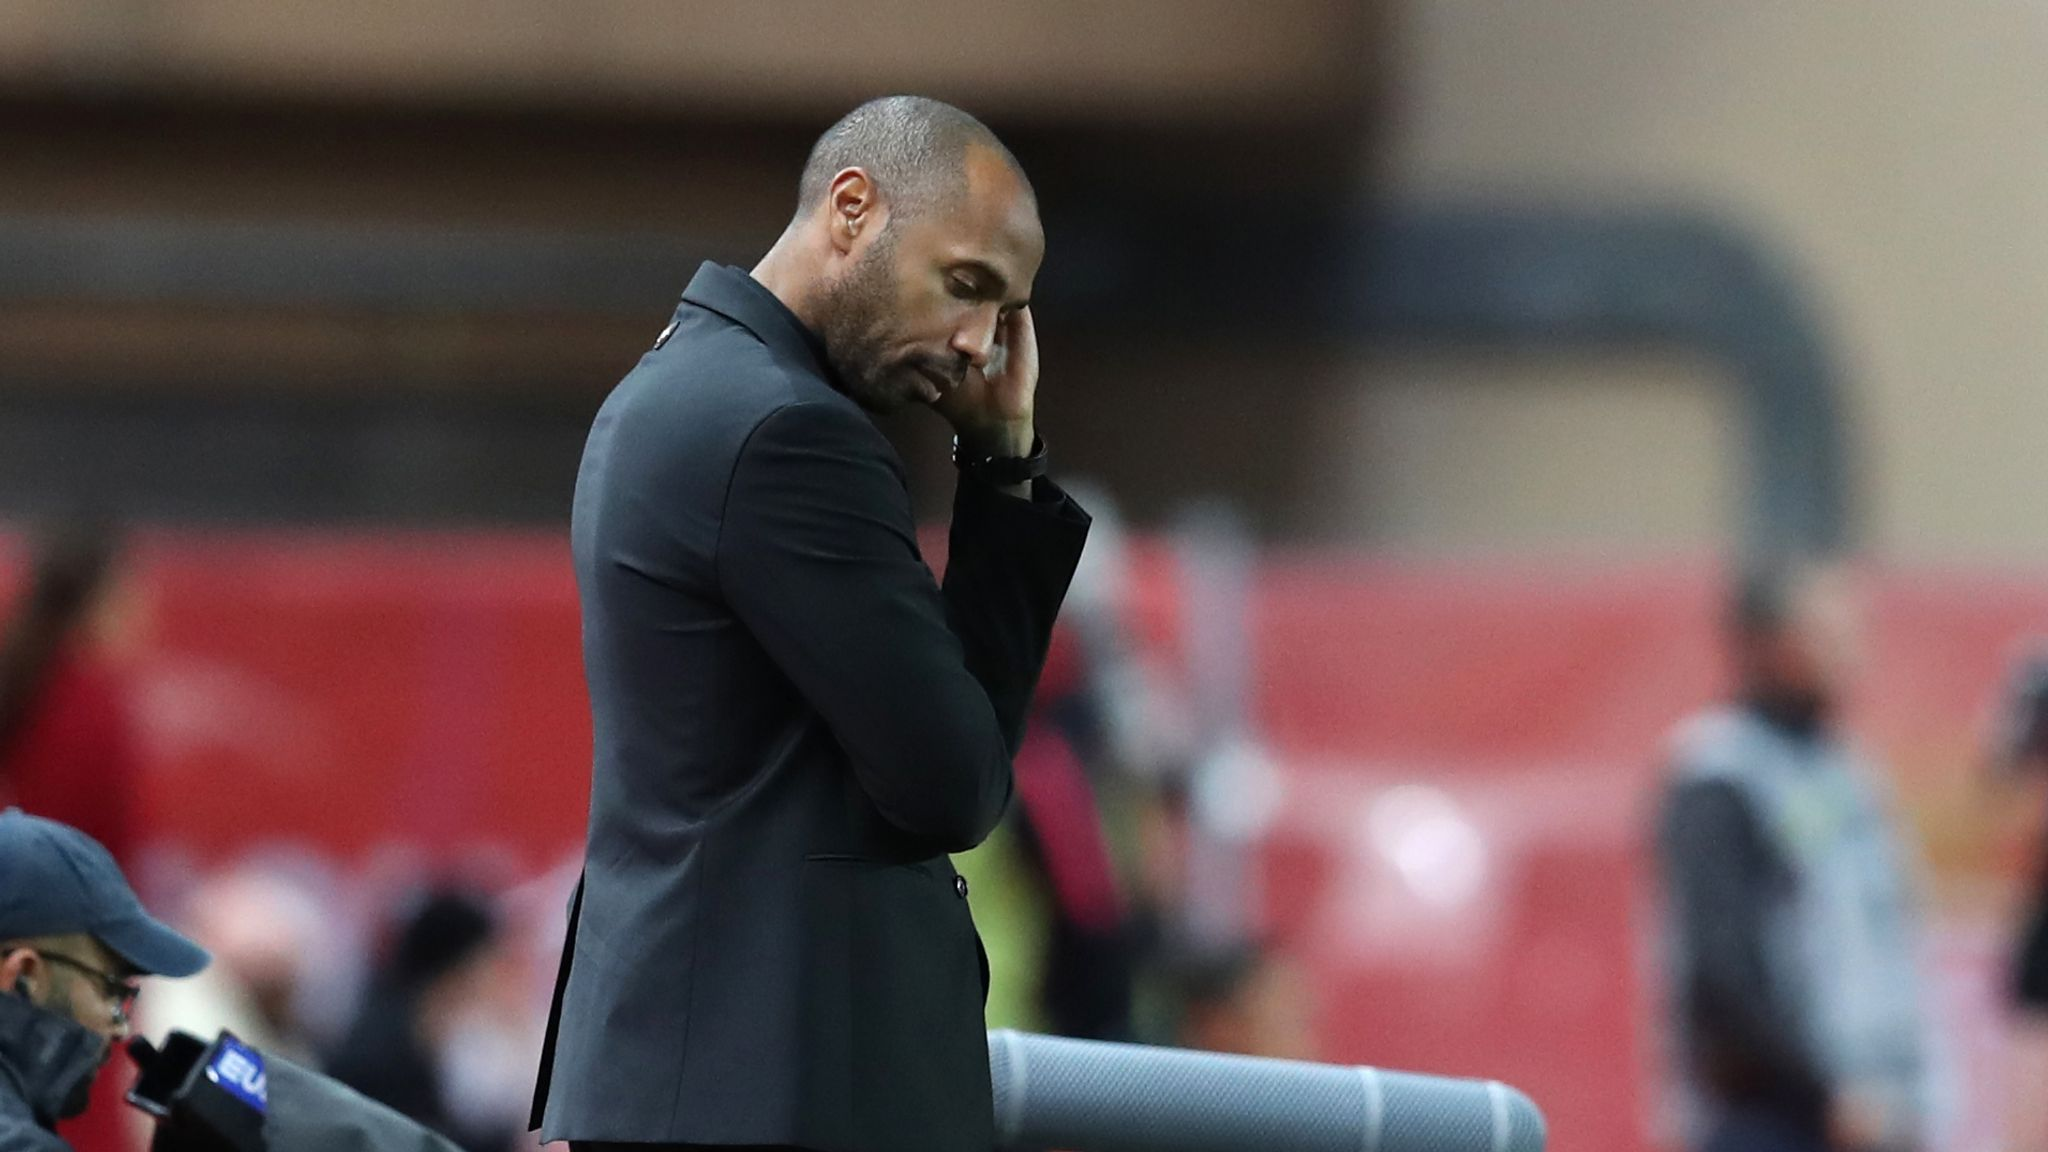 Thierry Henry: Montreal Impact boss says he learned from Monaco failure